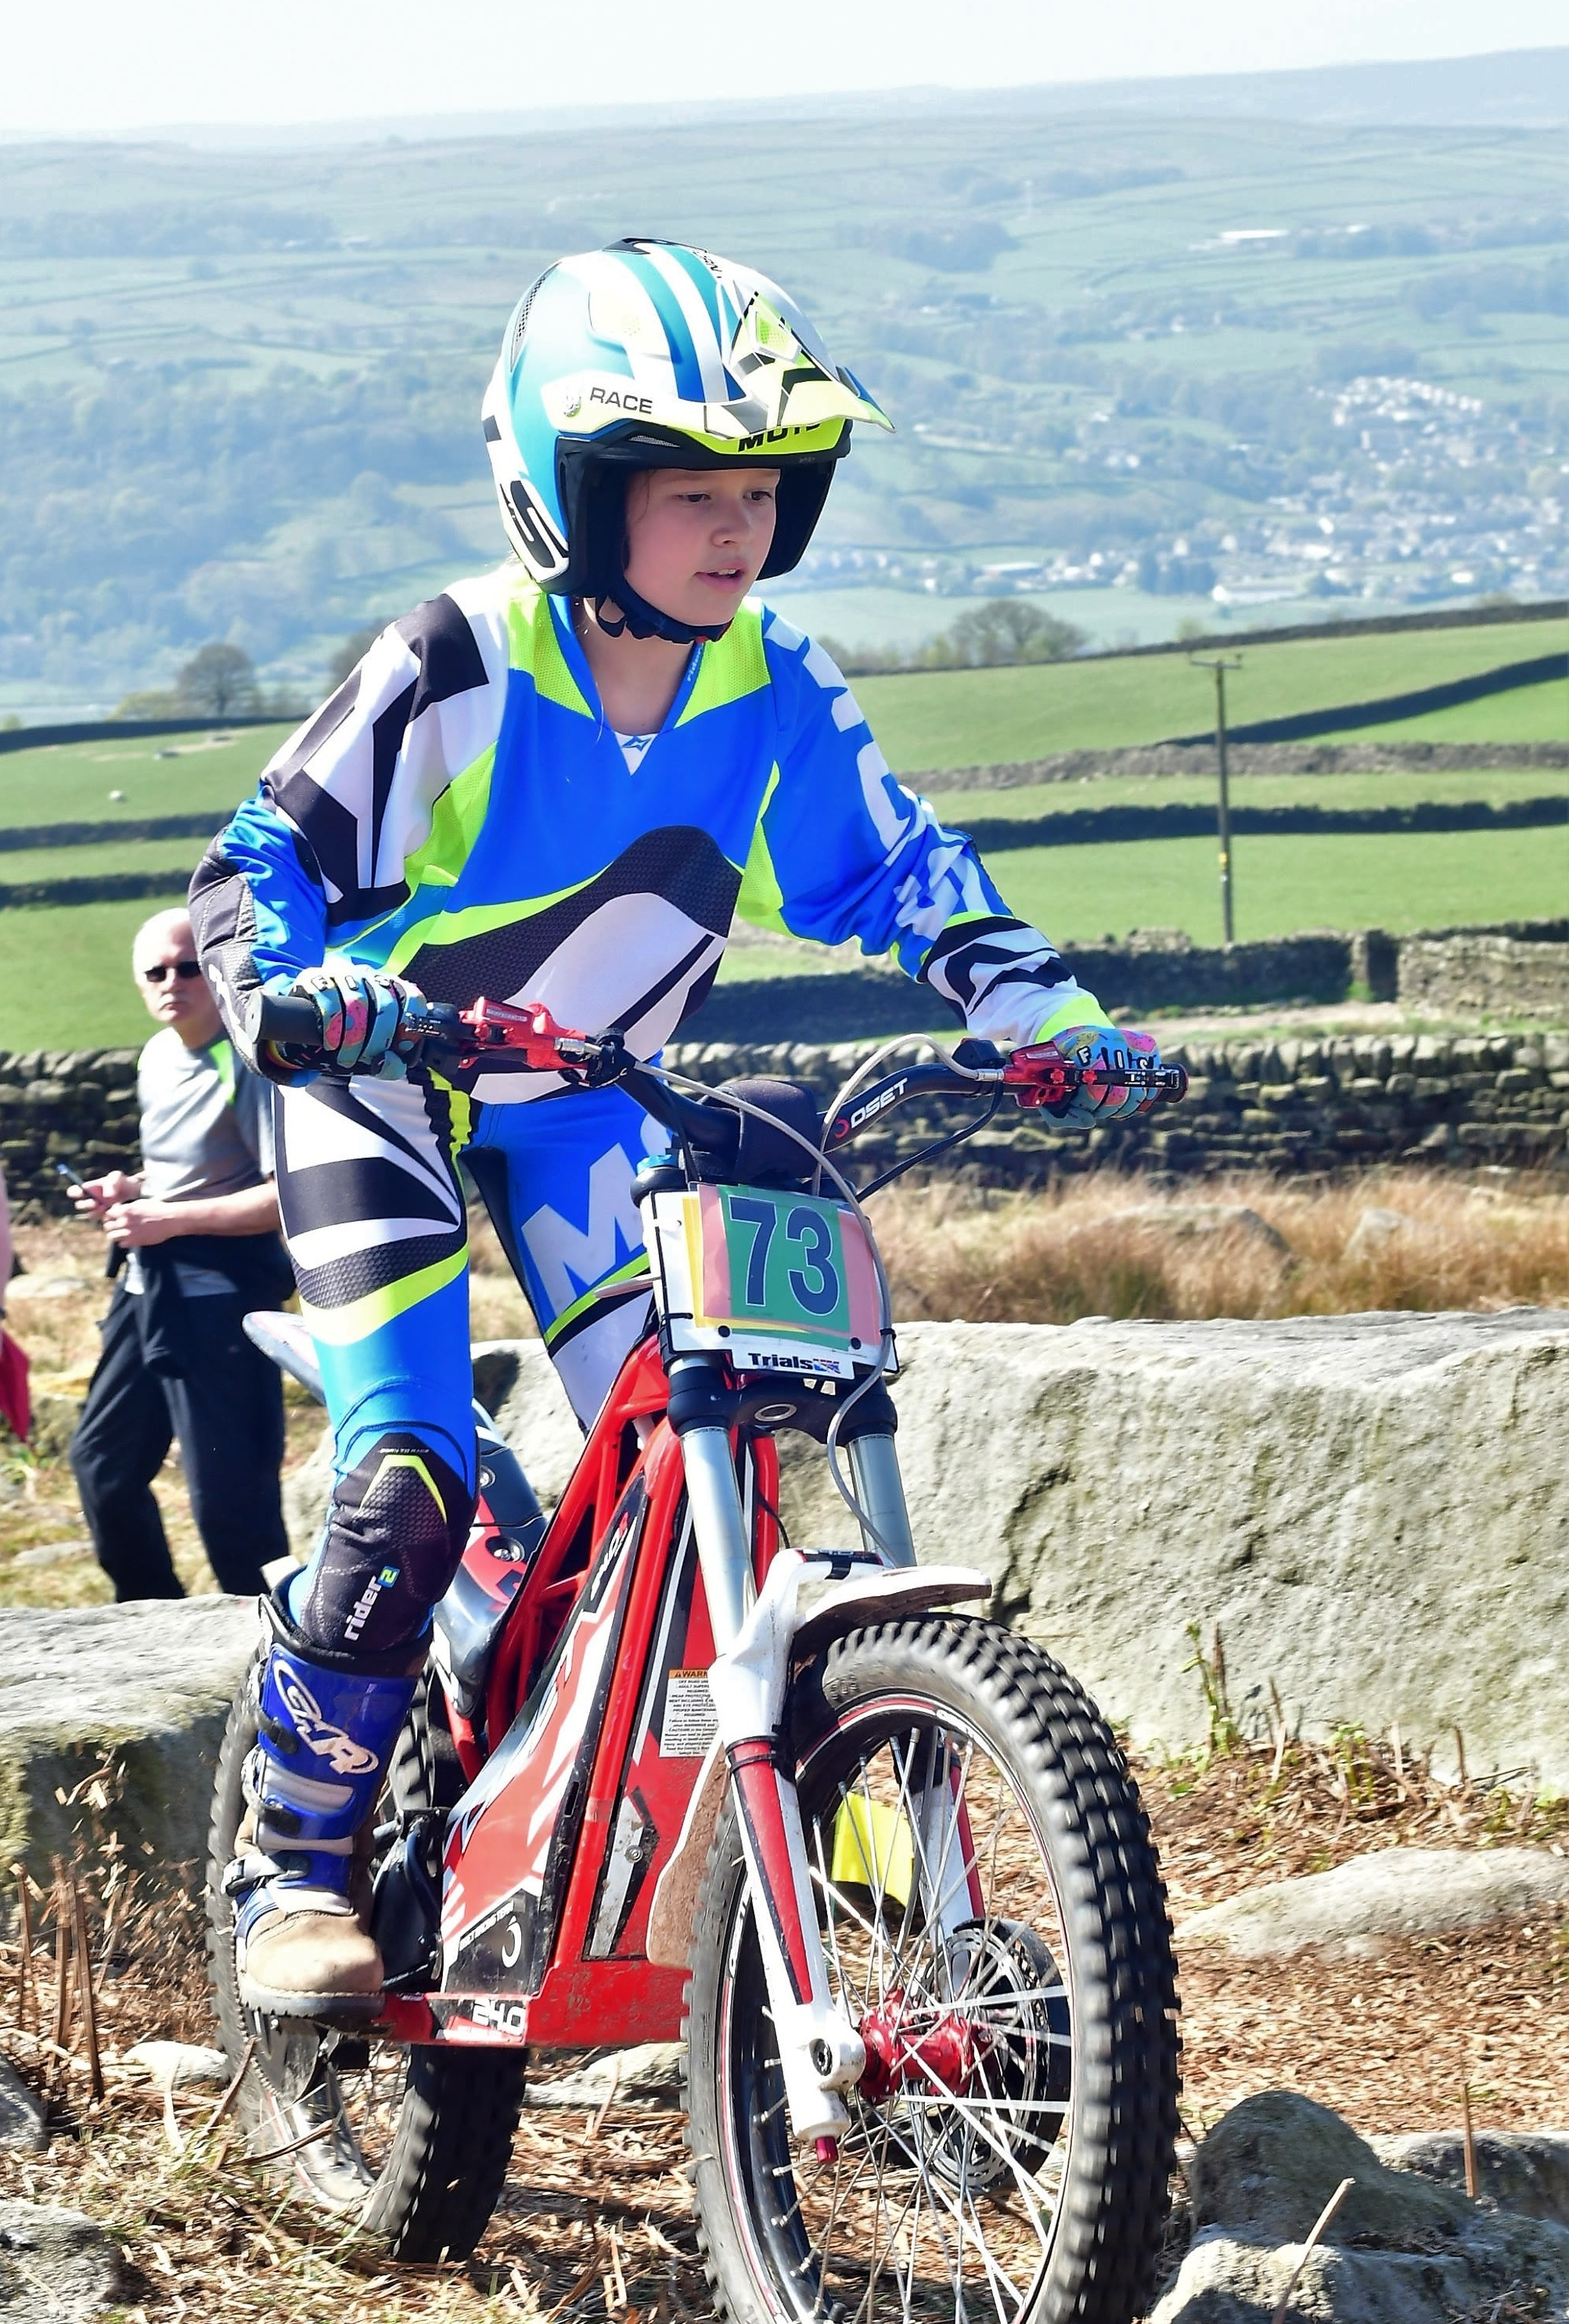 Poppy Fletcher performed well at the Yeadon-Guseley Trial held at Addingham Moorside